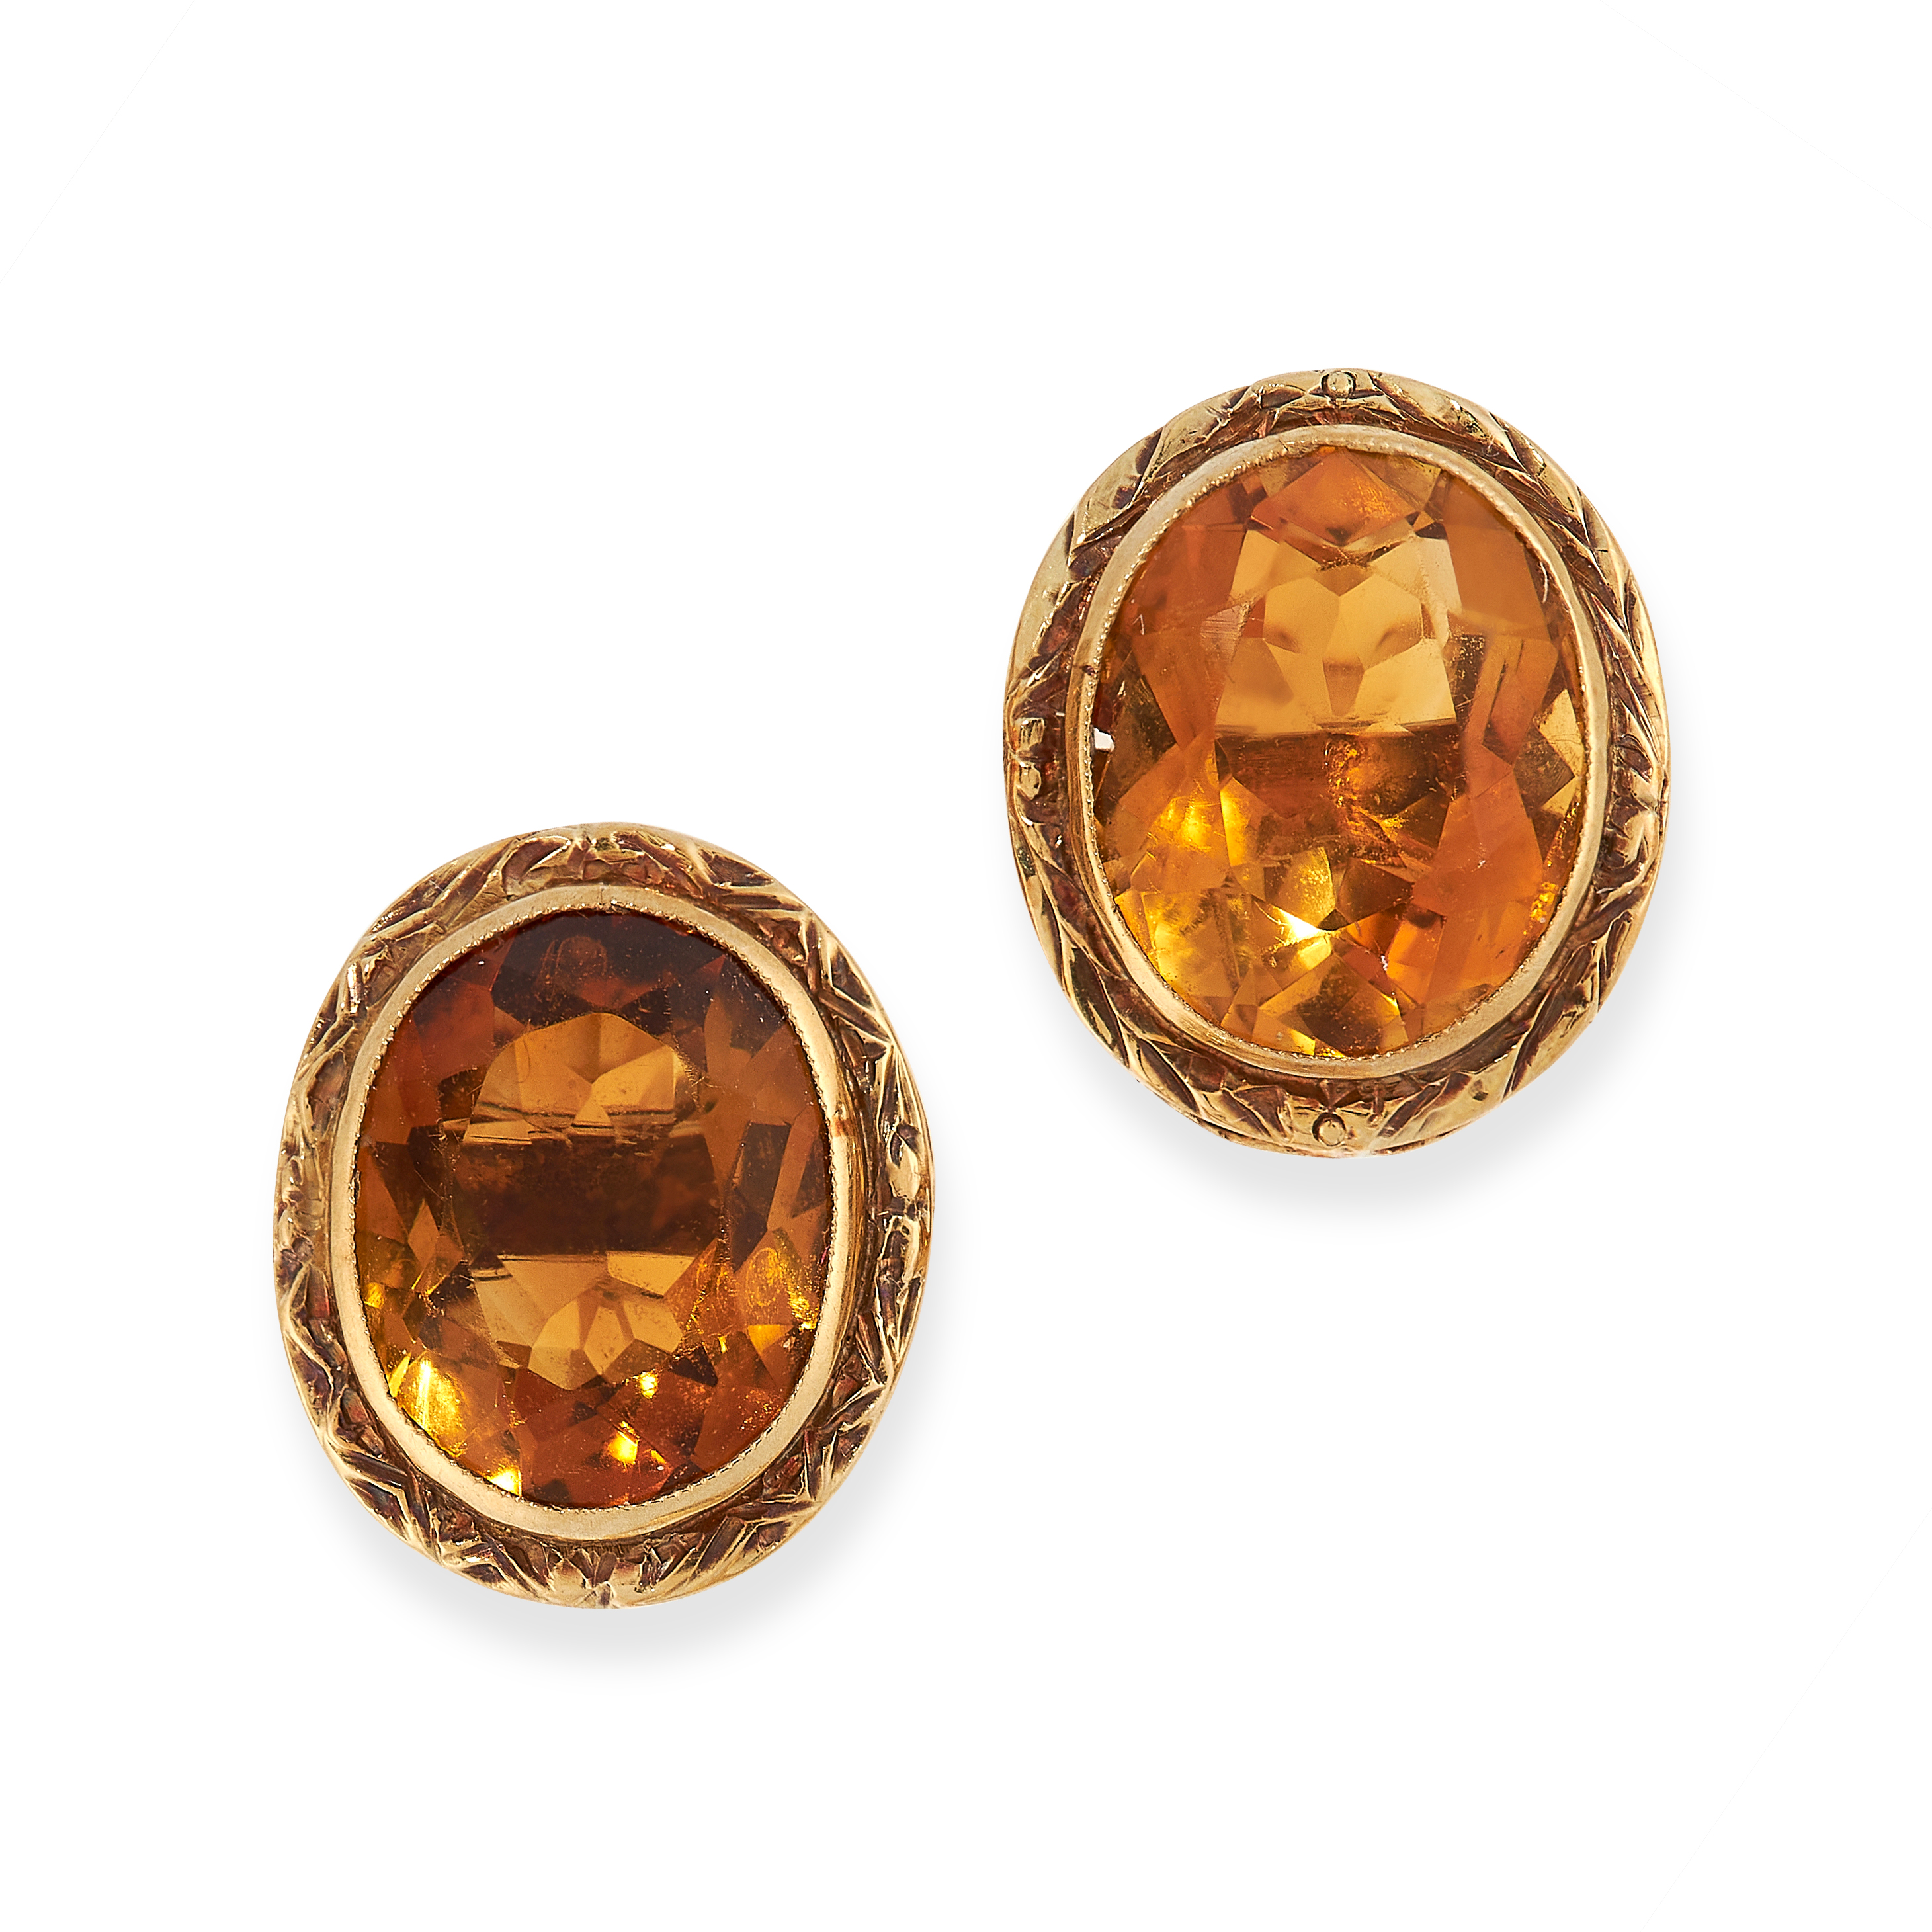 VINTAGE CITRINE EARRINGS AND RING SUITE each set an oval cut citrine within gold border, citrines - Image 2 of 3